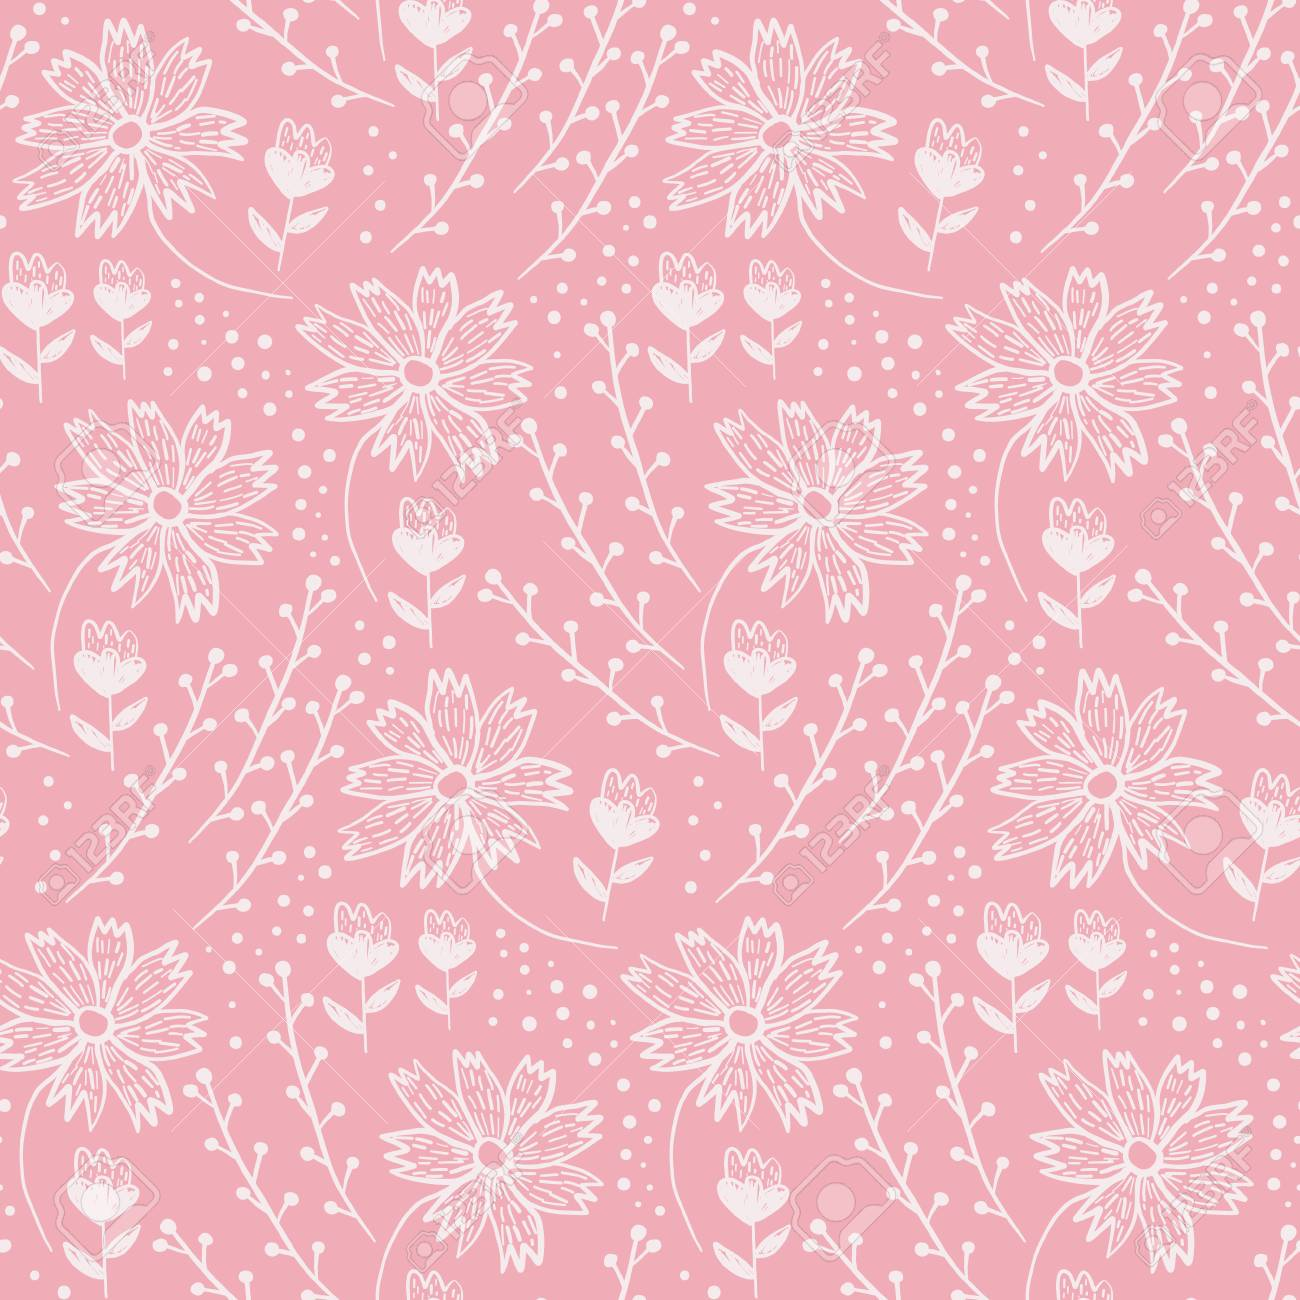 Trendy Coral Floral Seamless Pattern With White Flowers And Leaves